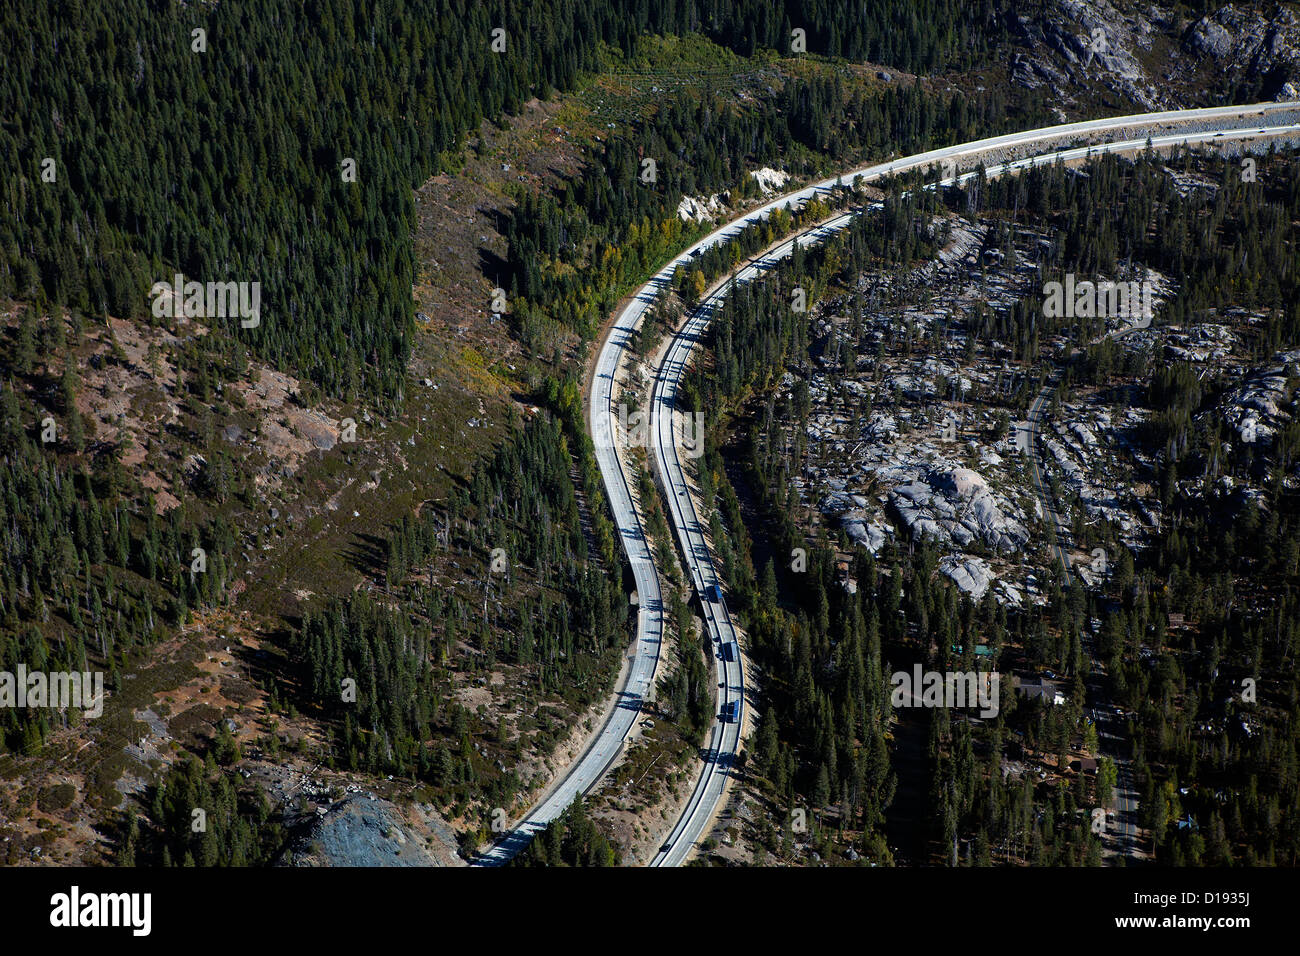 aerial photograph interstate I-80 Sierra mountains California - Stock Image